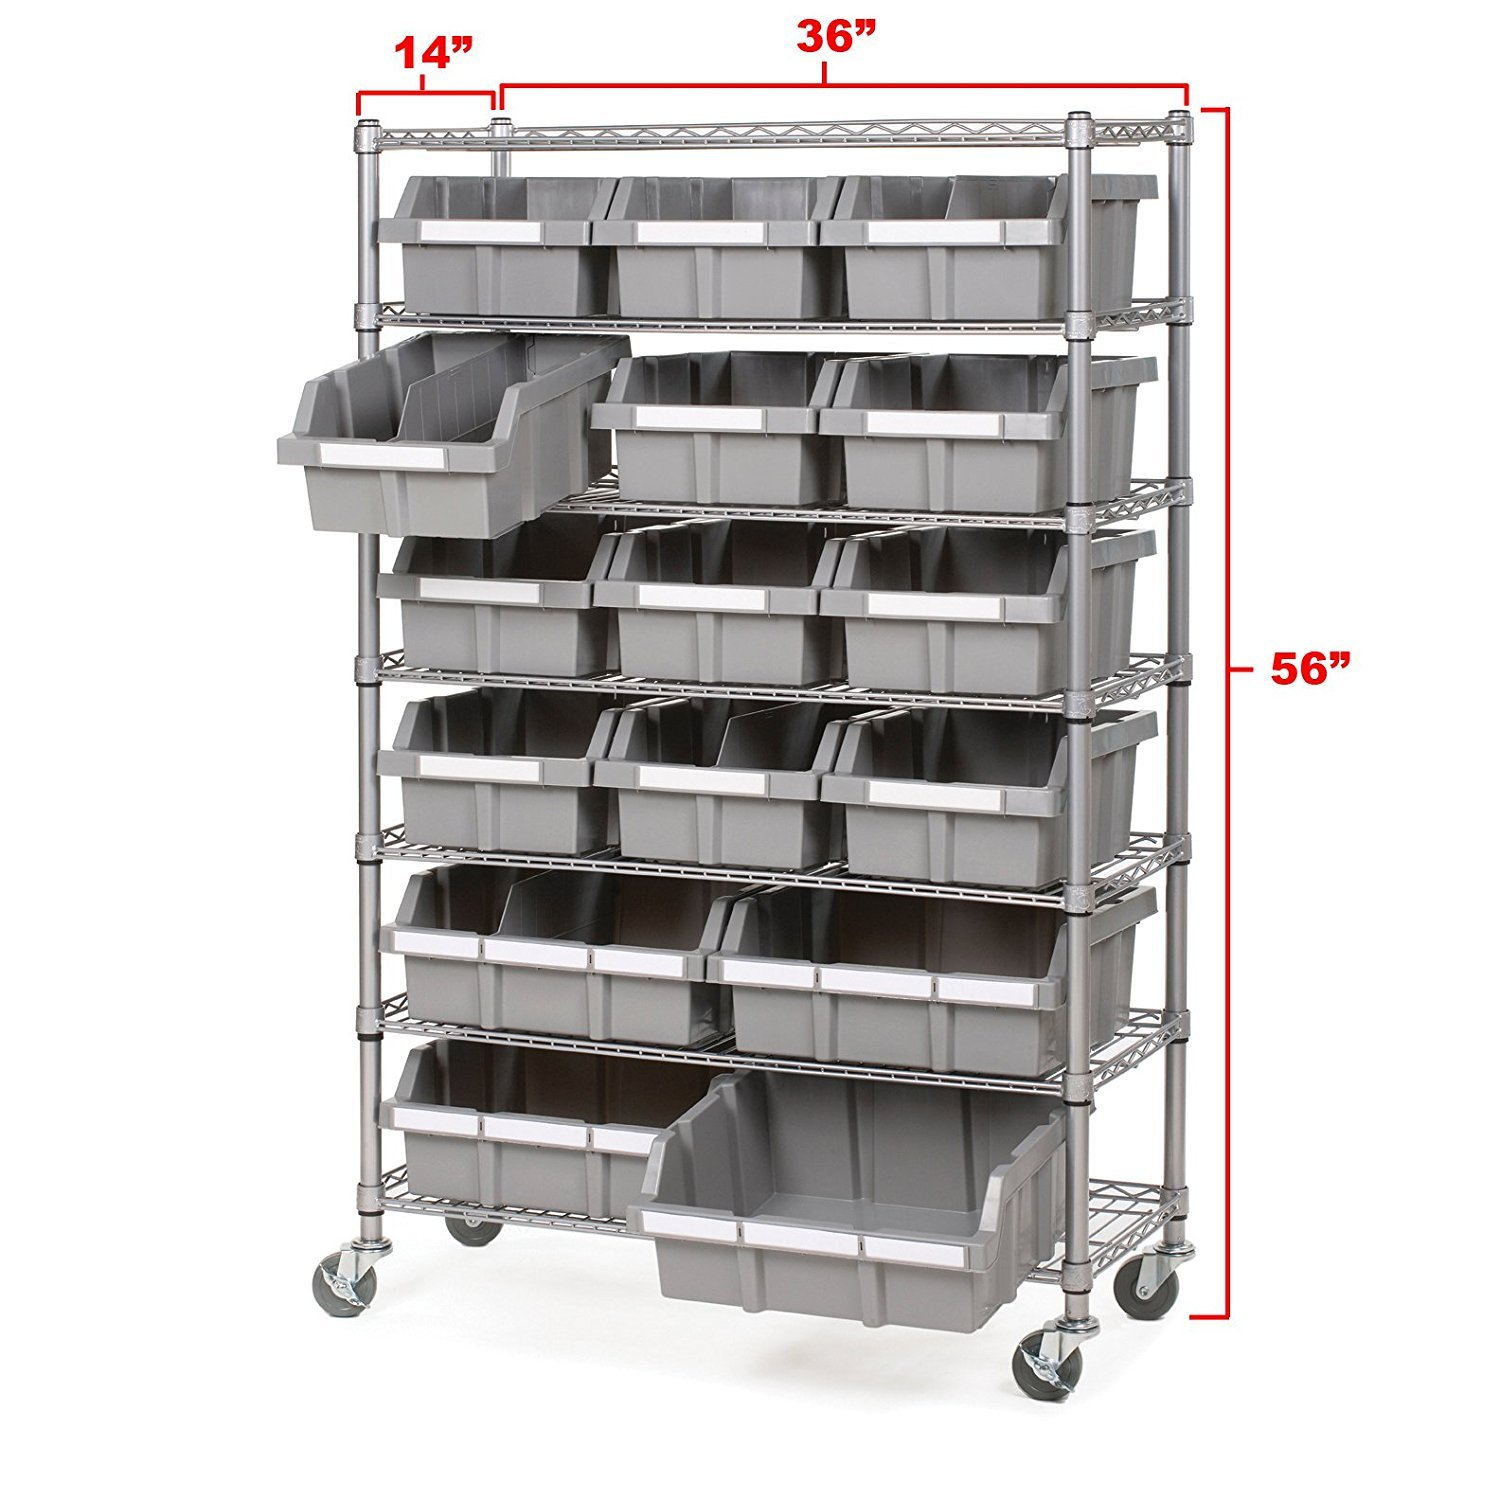 Seville Classics Commercial 7-Tier Platinum/Gray NSF 16-Bin Rack Storage System by Seville Classics (Image #8)